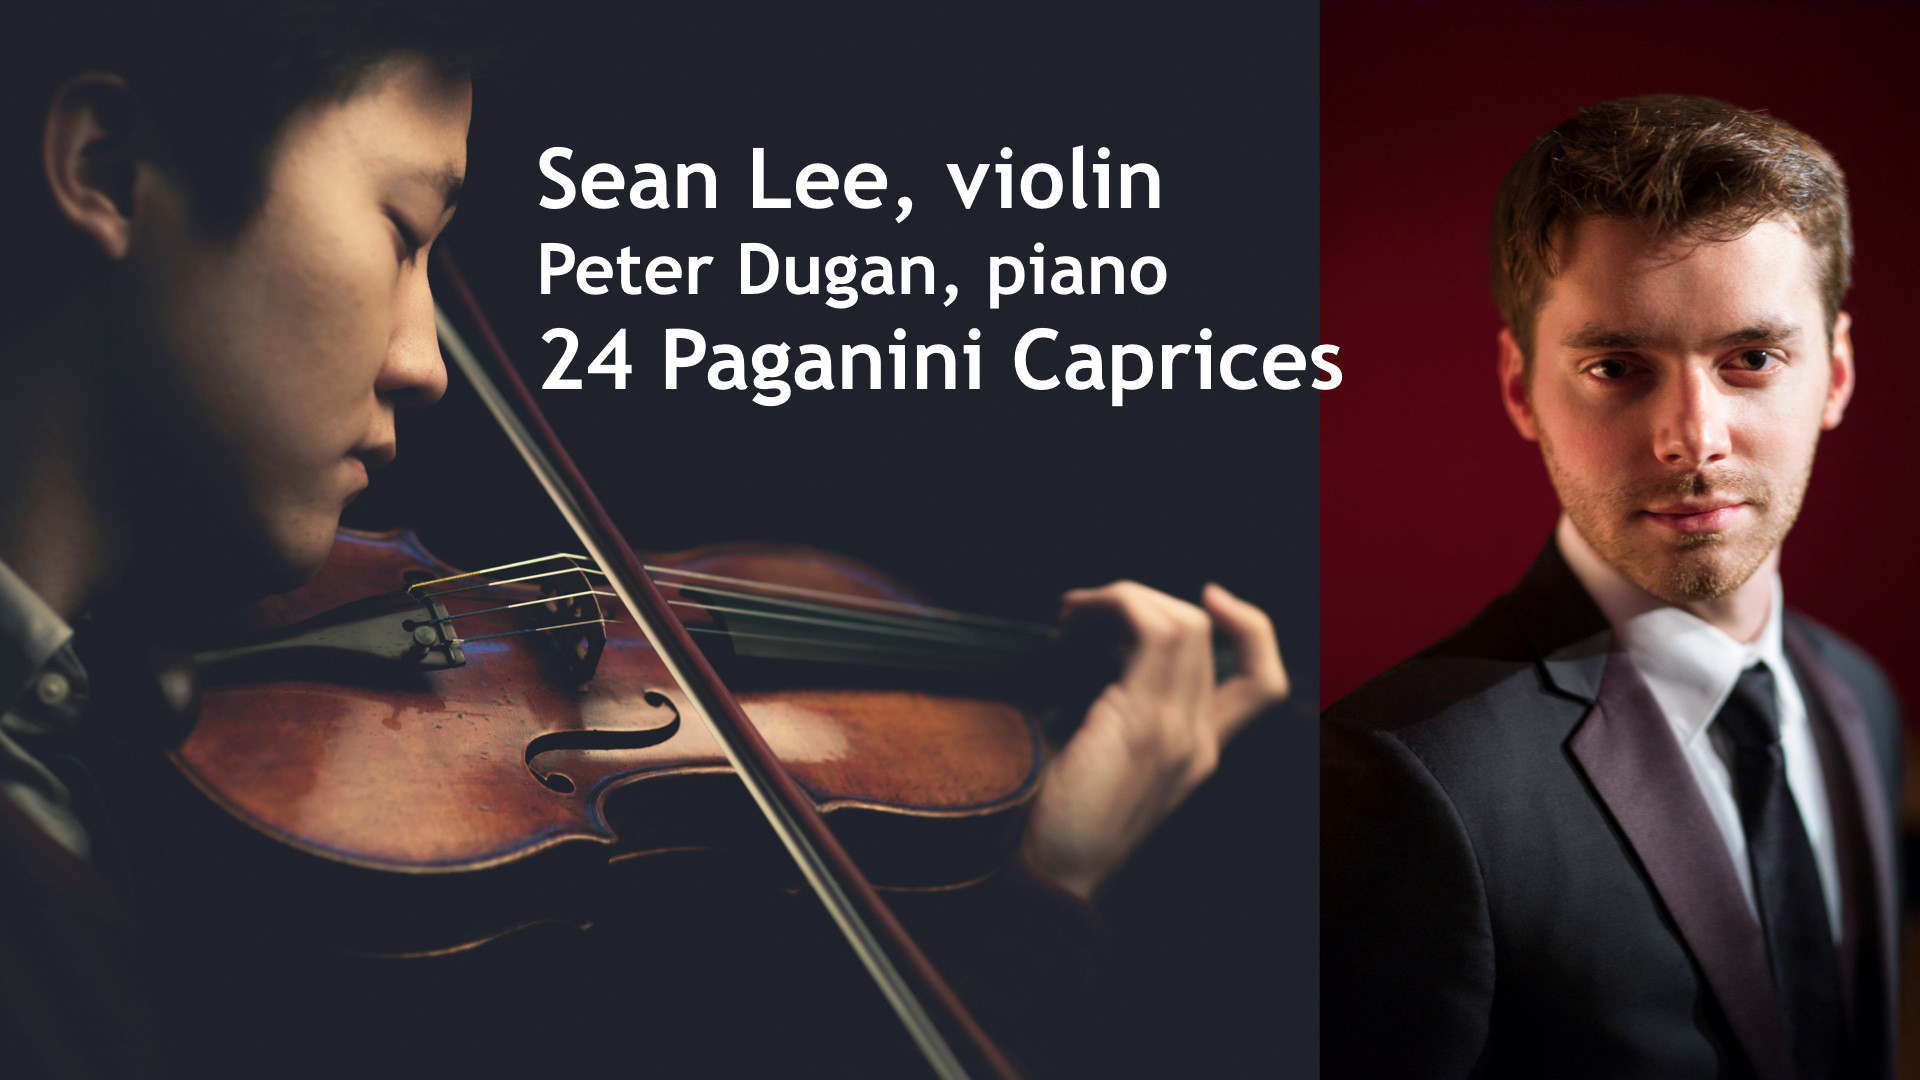 Sean Lee - Violin and Piano